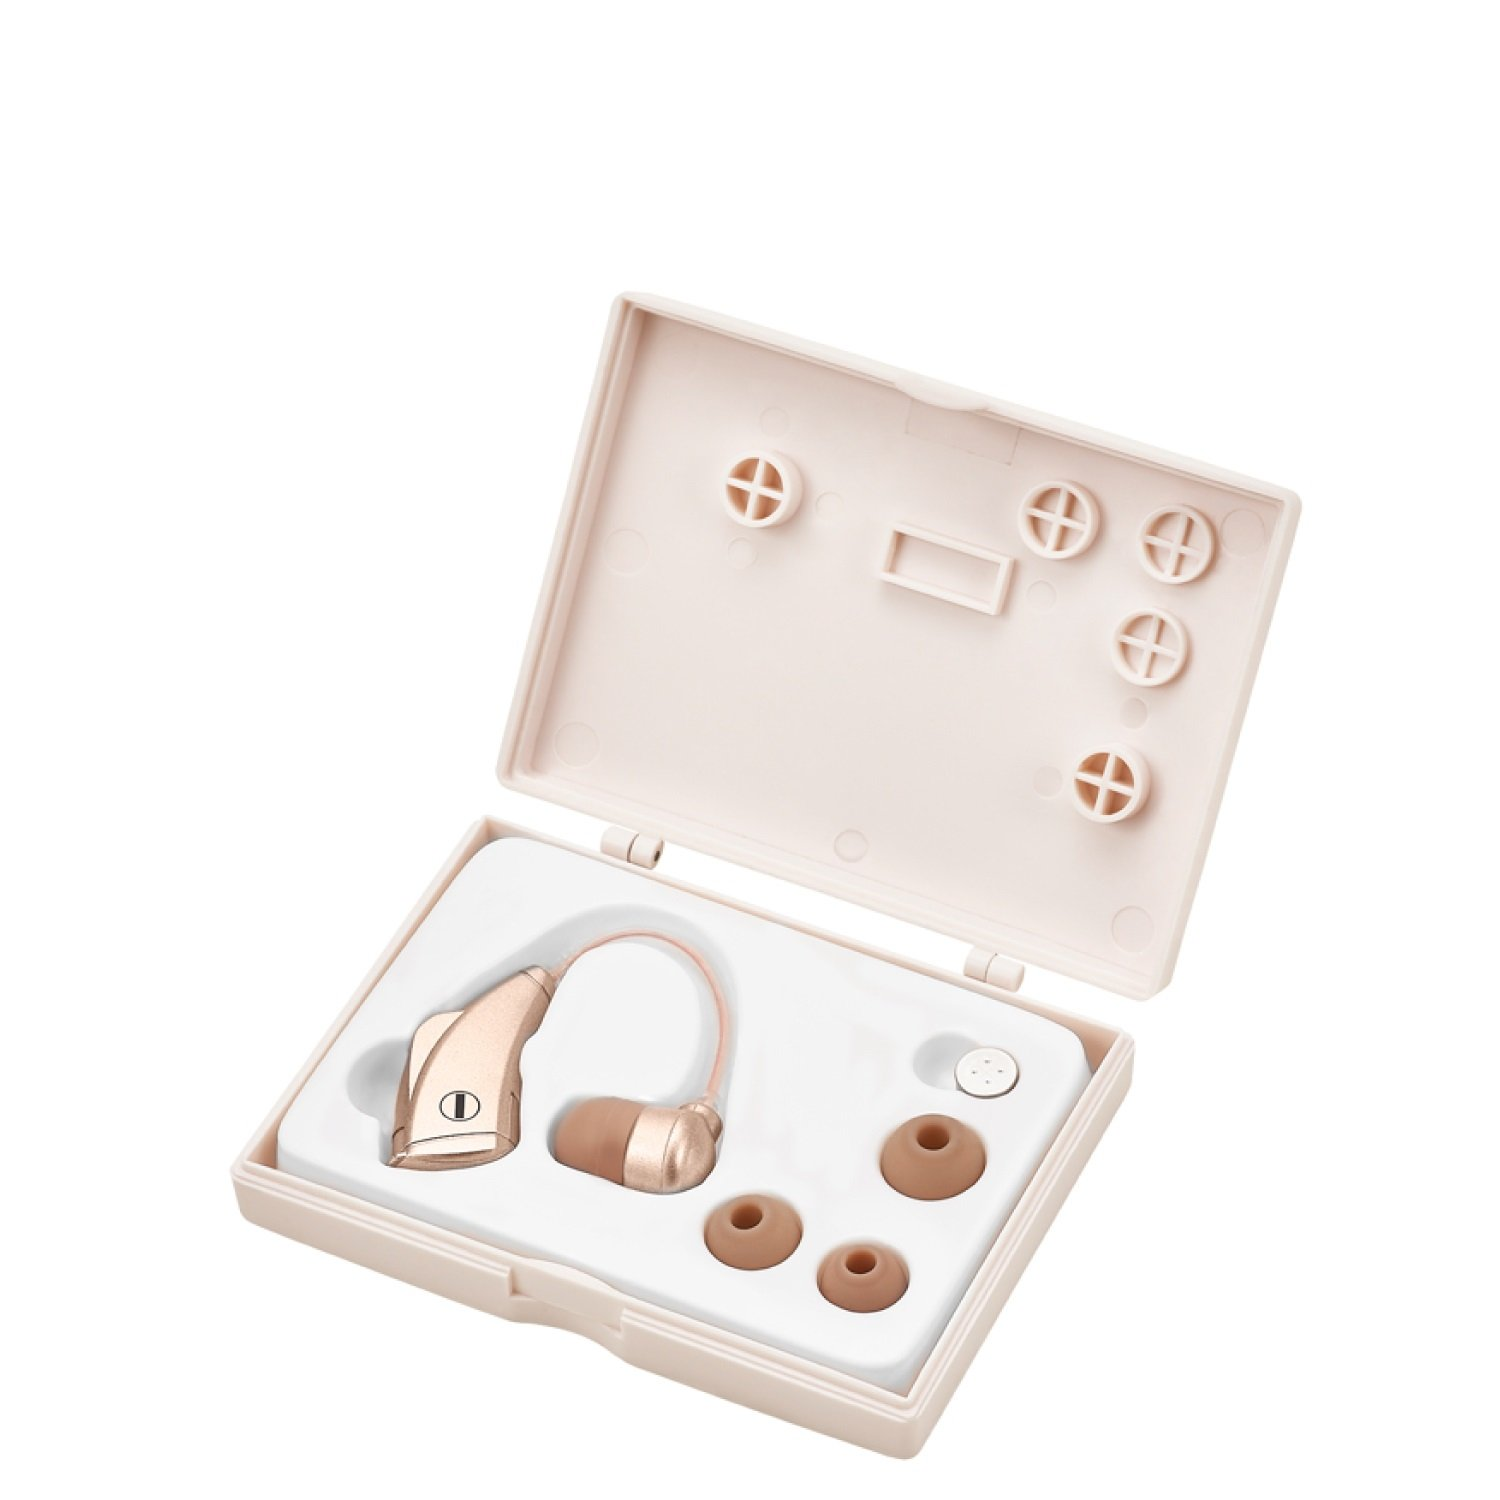 DTMcare High Quality Digital Hearing Amplifier - Affordable Hearing Enhancer with 4 Ear buds to fit everyone. (Gold Copper)